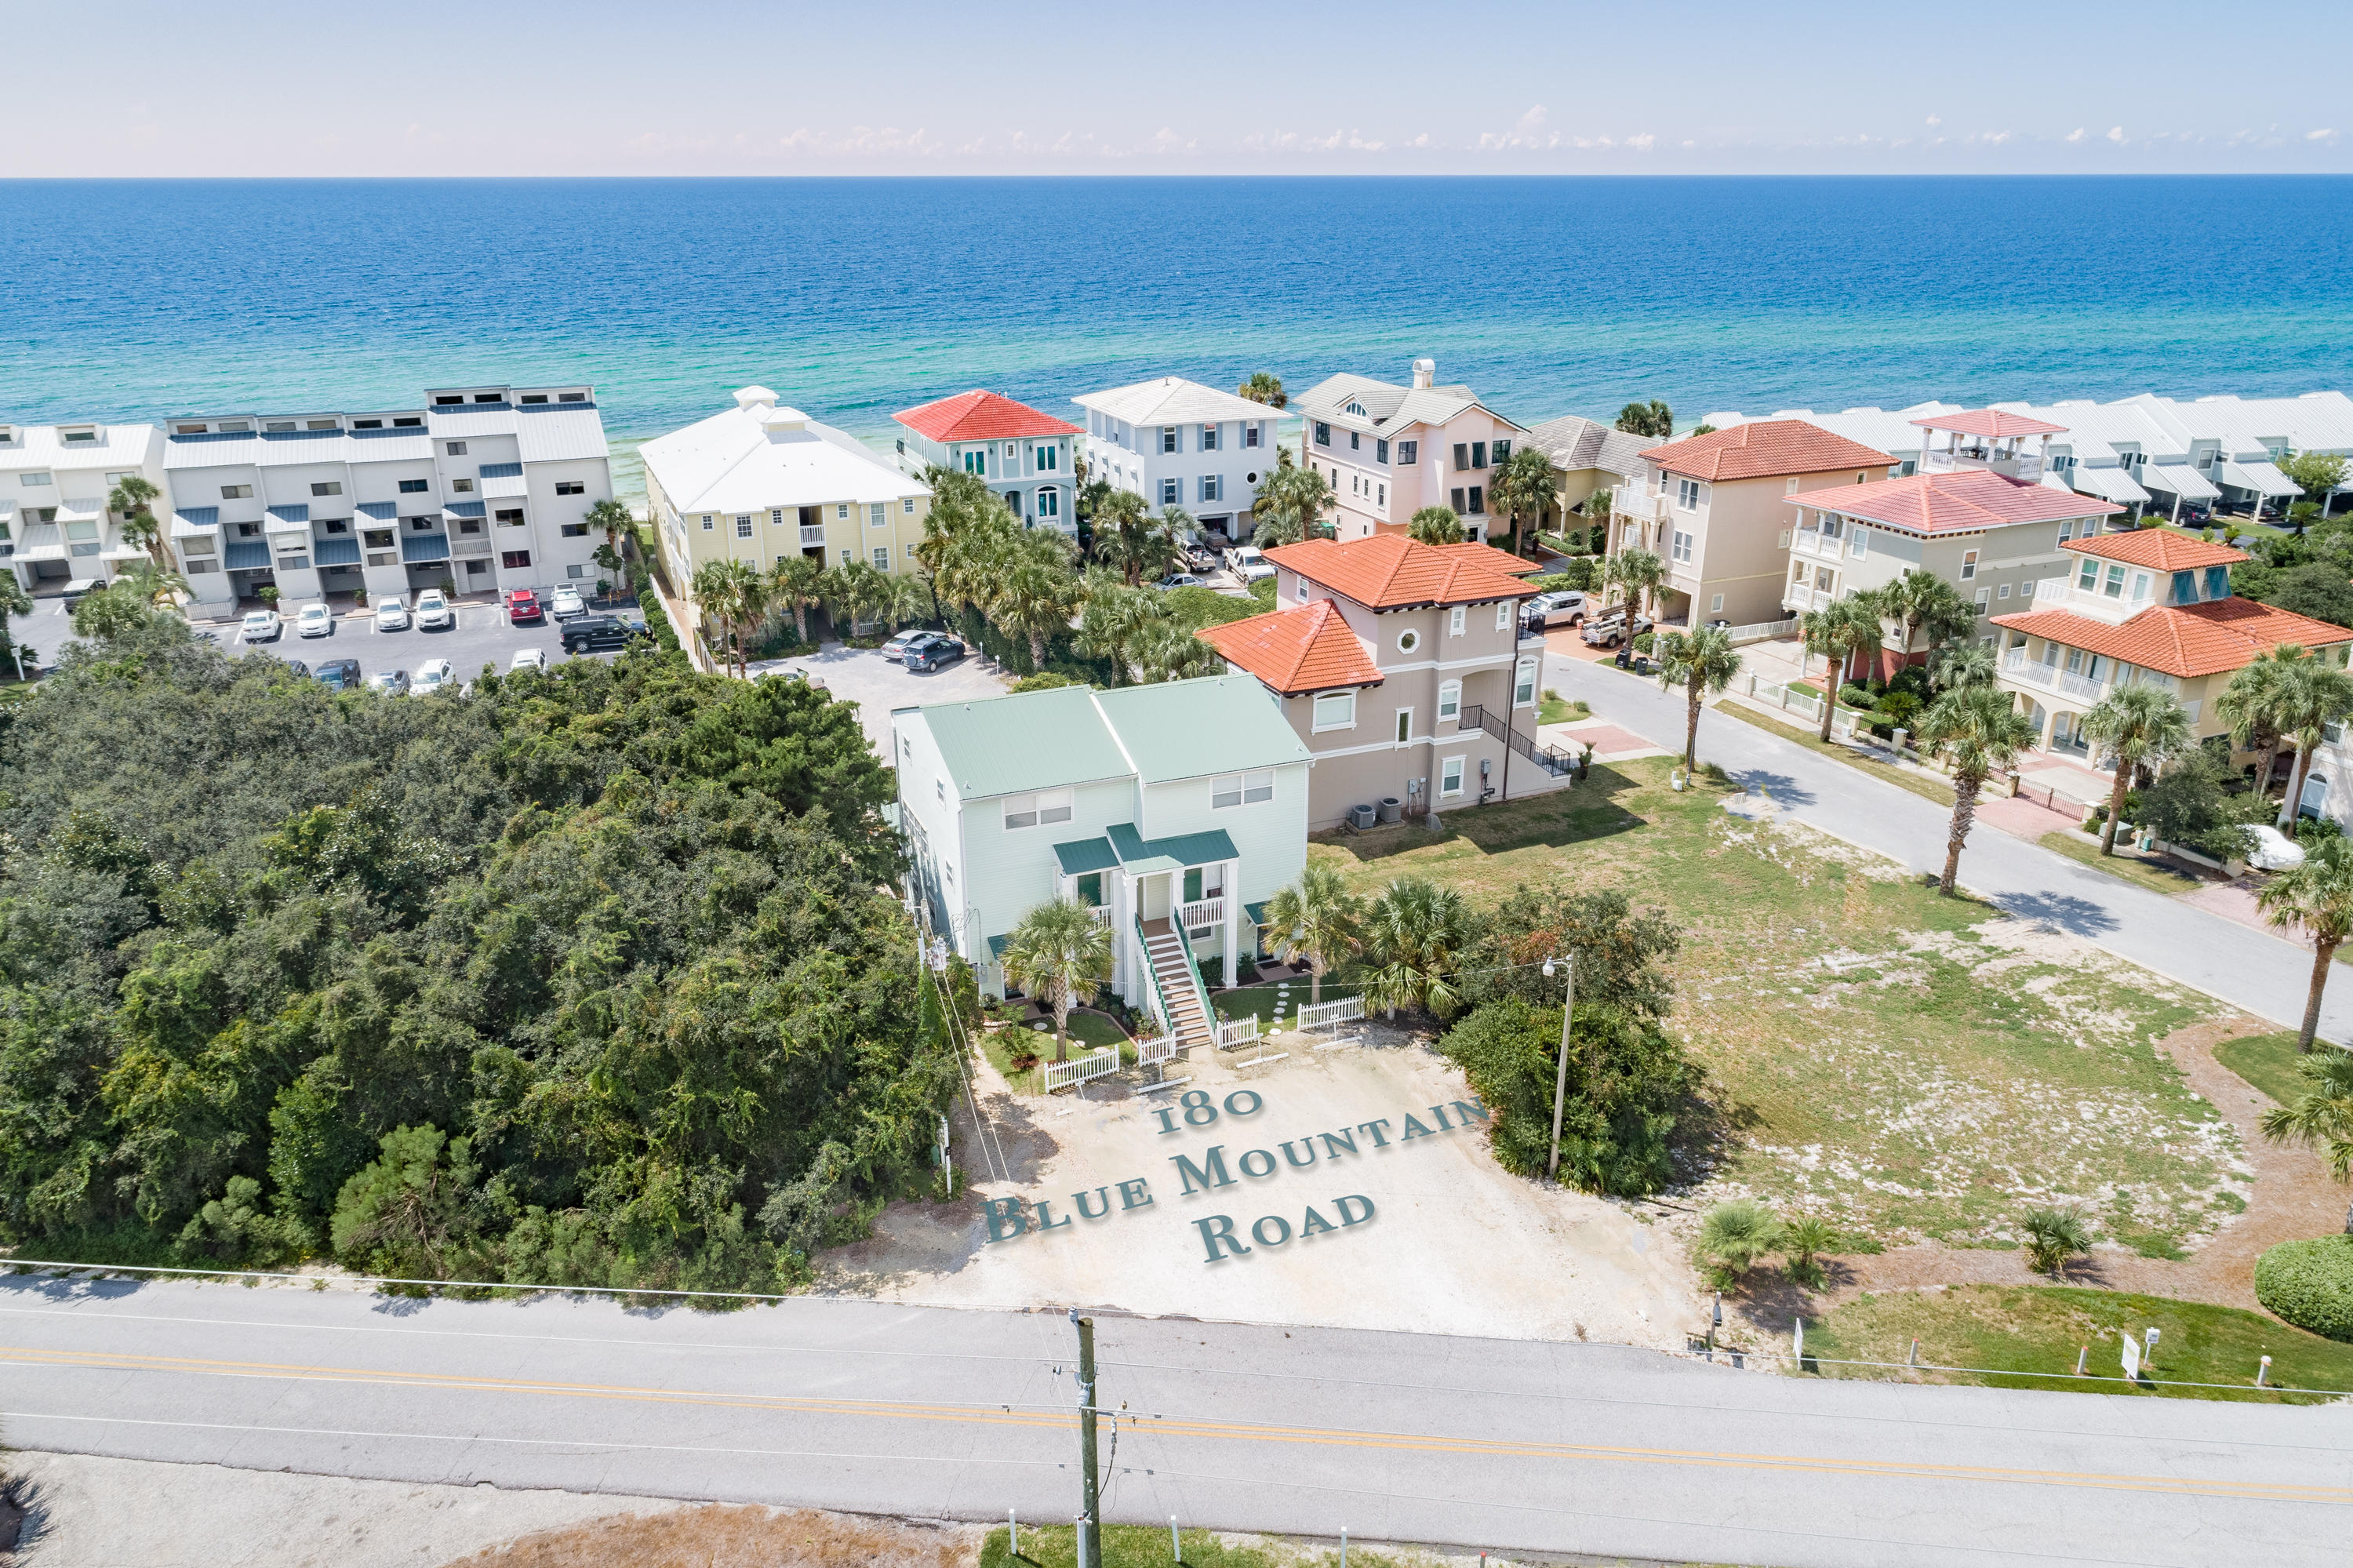 A 6 Bedroom 6 Bedroom Blue Mountain Beach Townhome